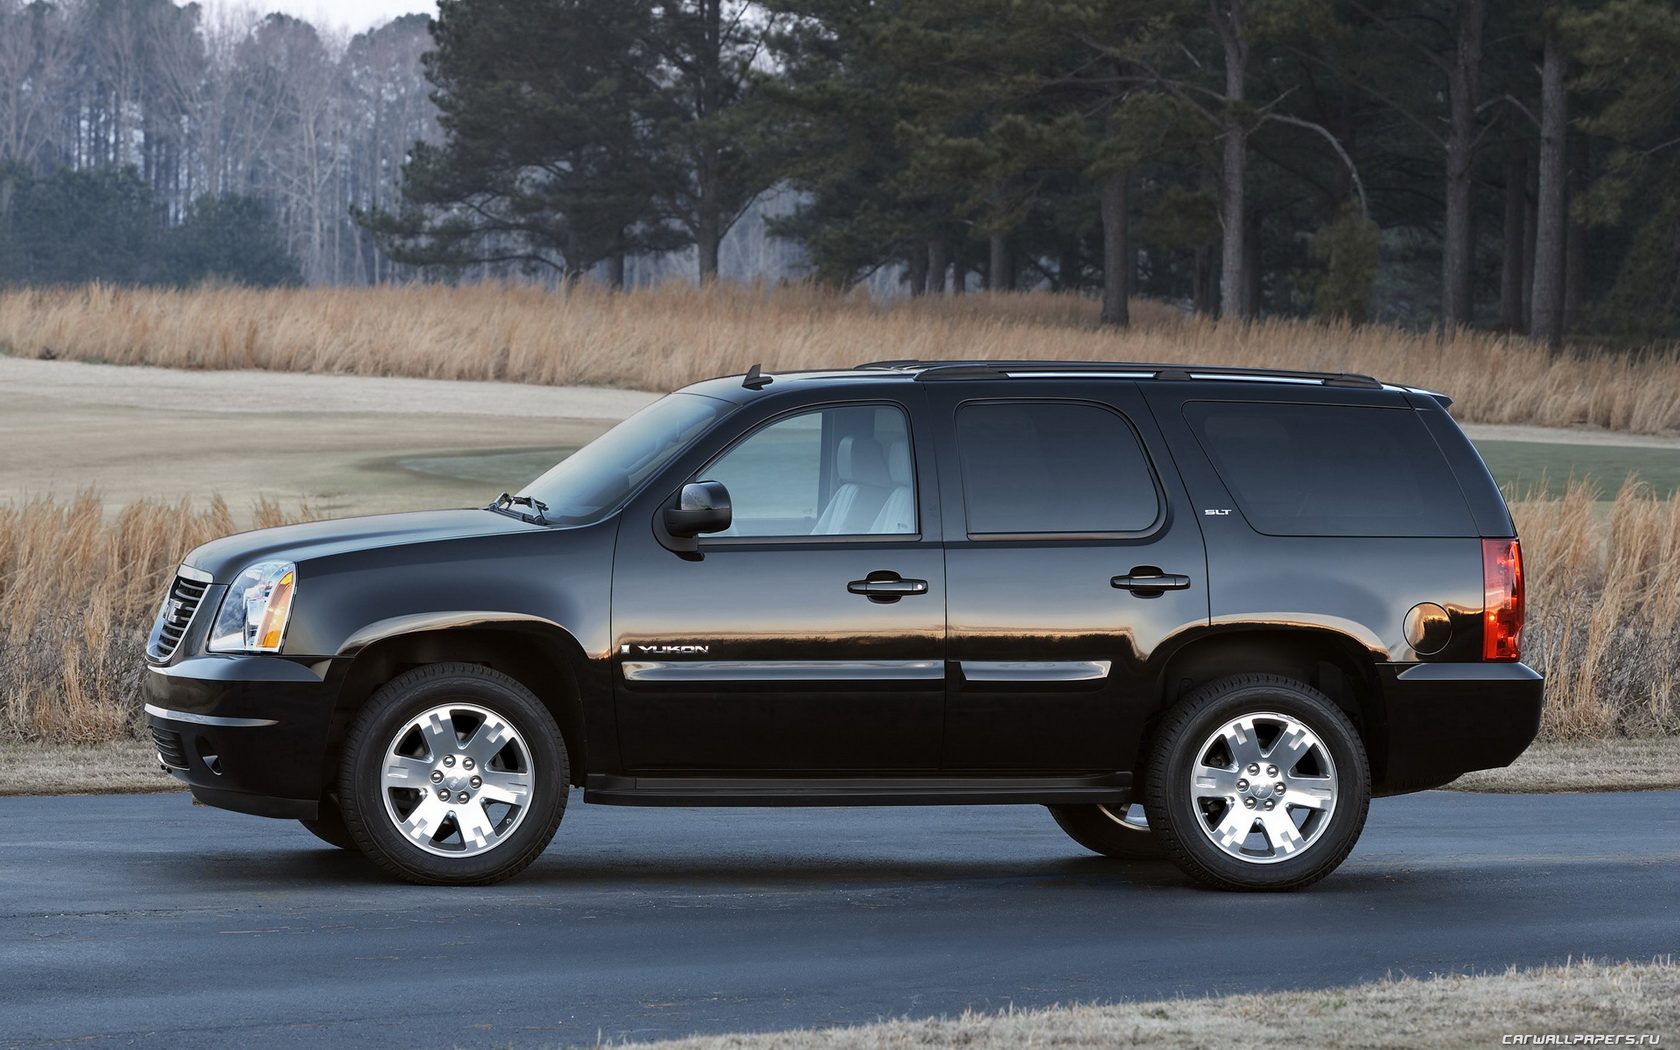 $499 - 2011 GMC Yukon XL SLT Available For RENT (UBER READY)